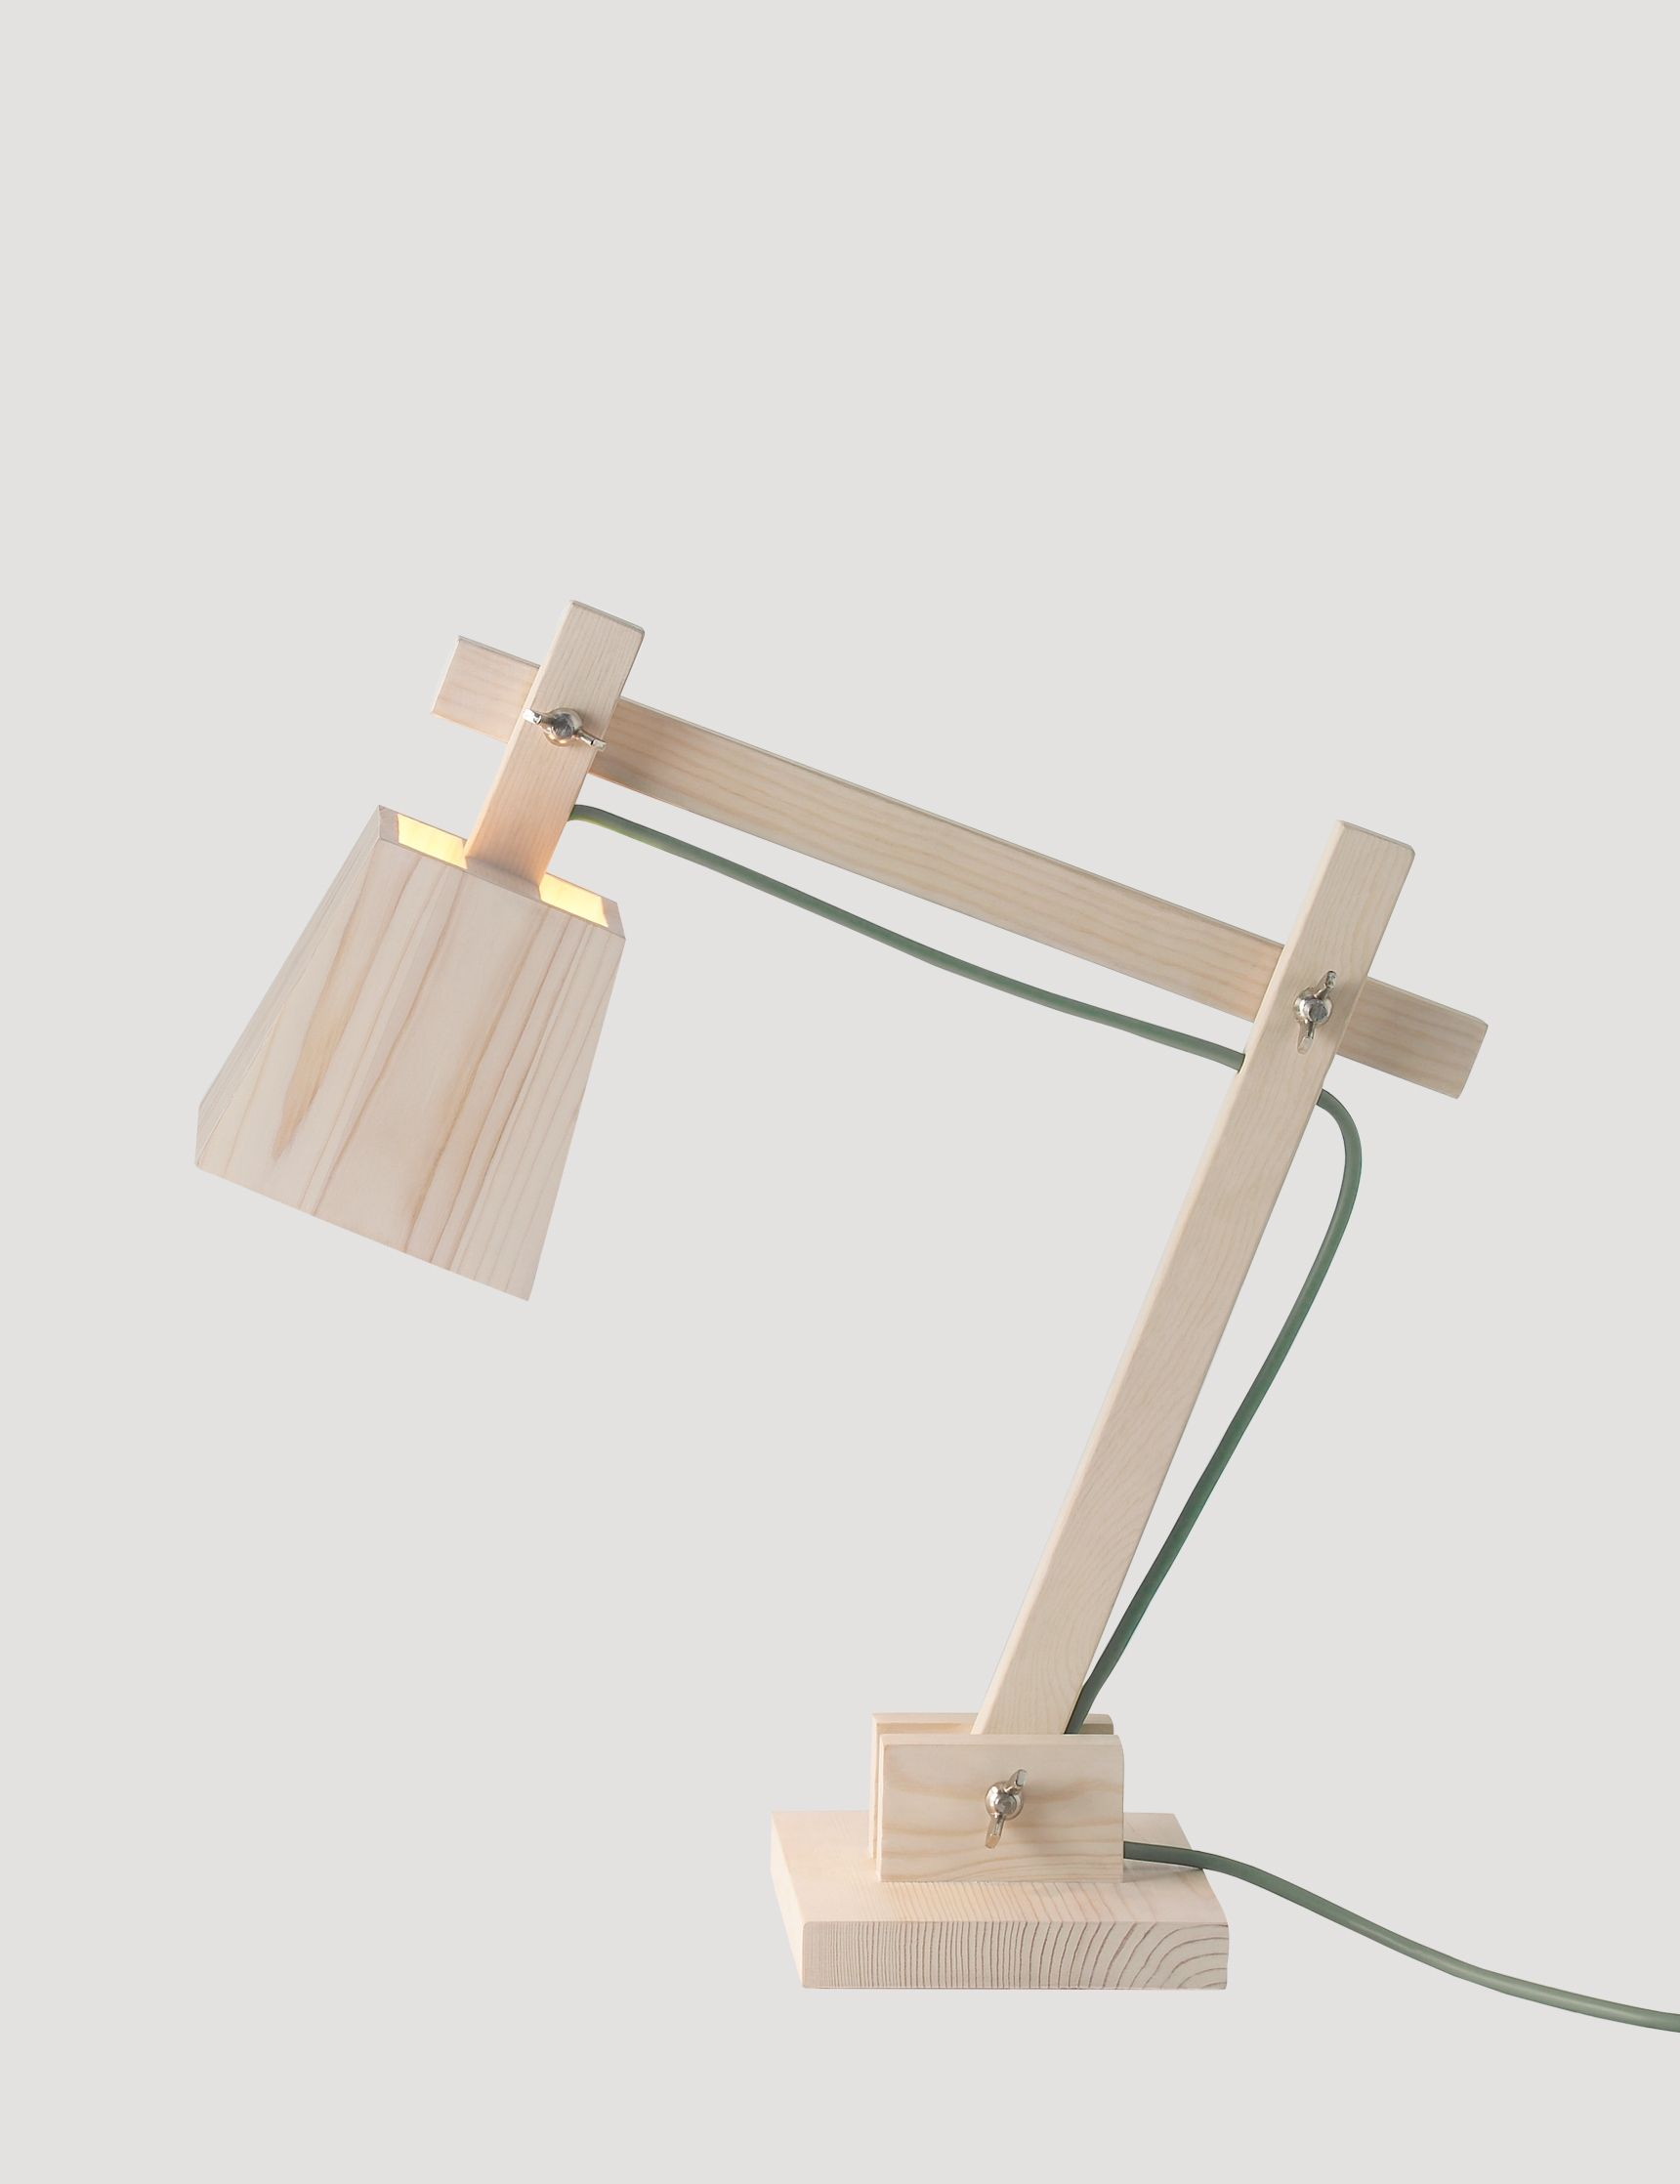 Designed by TAF Architects, the WOOD table lamp offers a contemporary, all-wooden interpretation of the traditional architect lamp. Here with a dusty green colored cord. #muuto #muutodesign